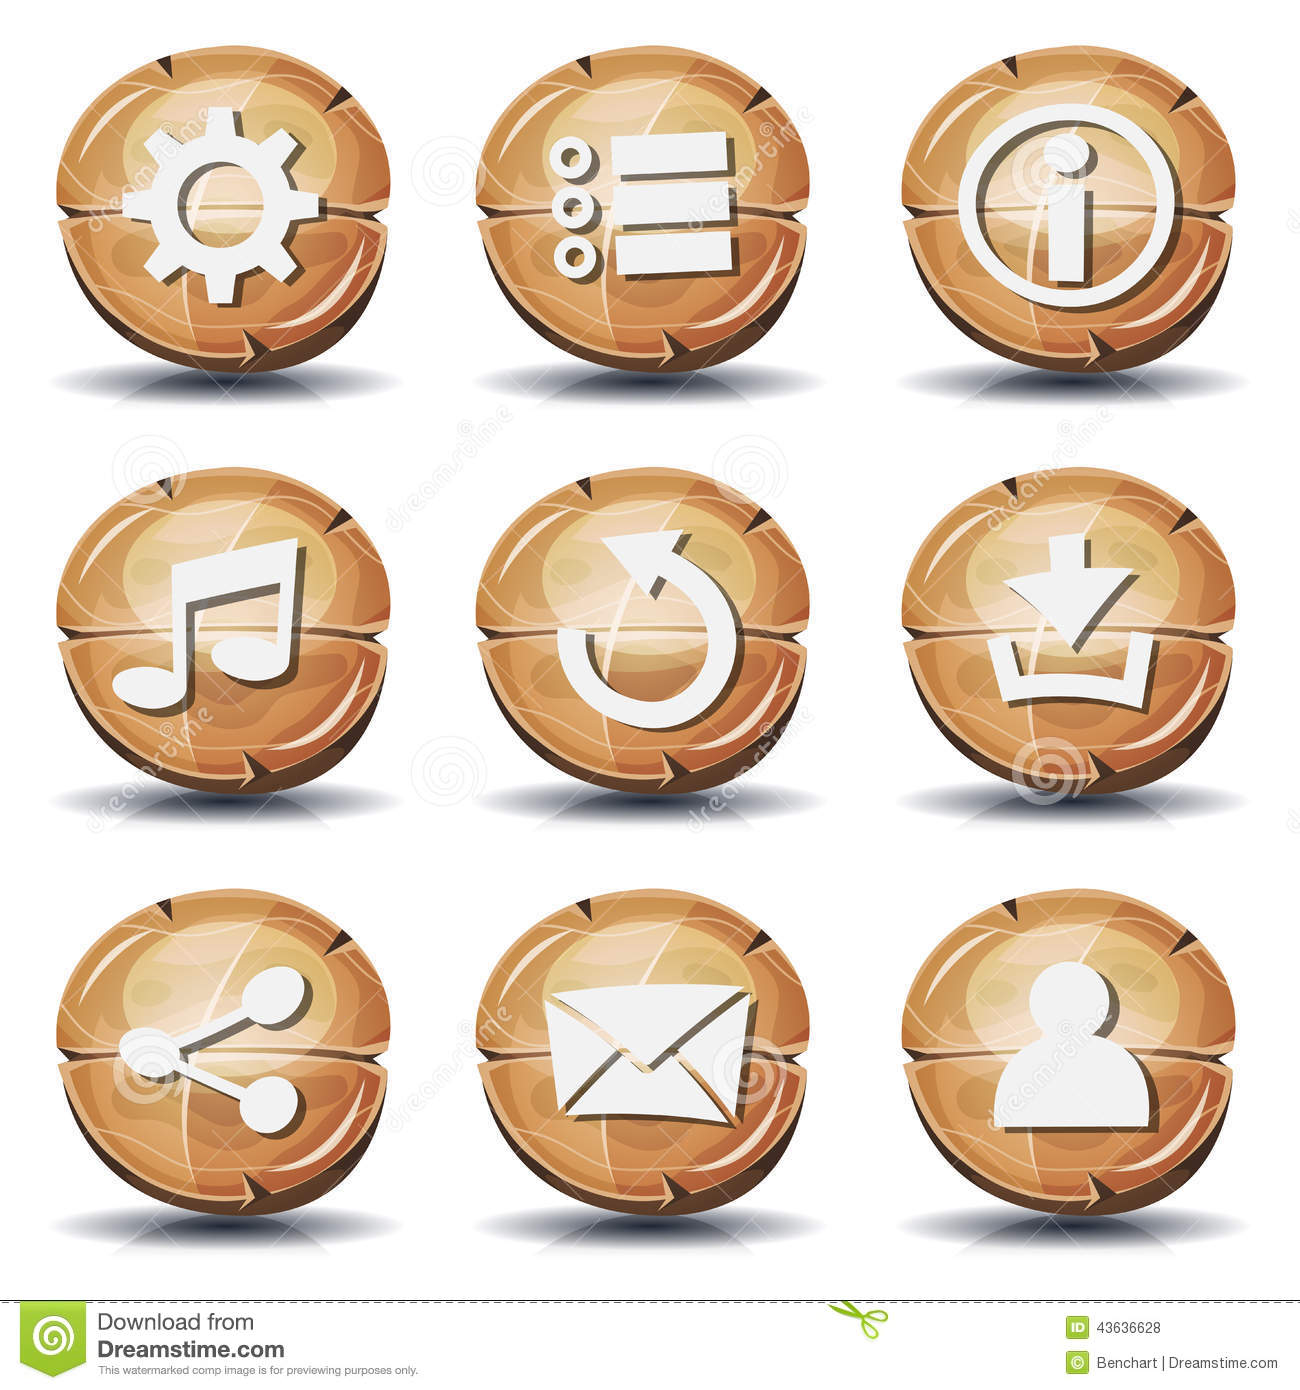 7 Wooden Game Icon Images